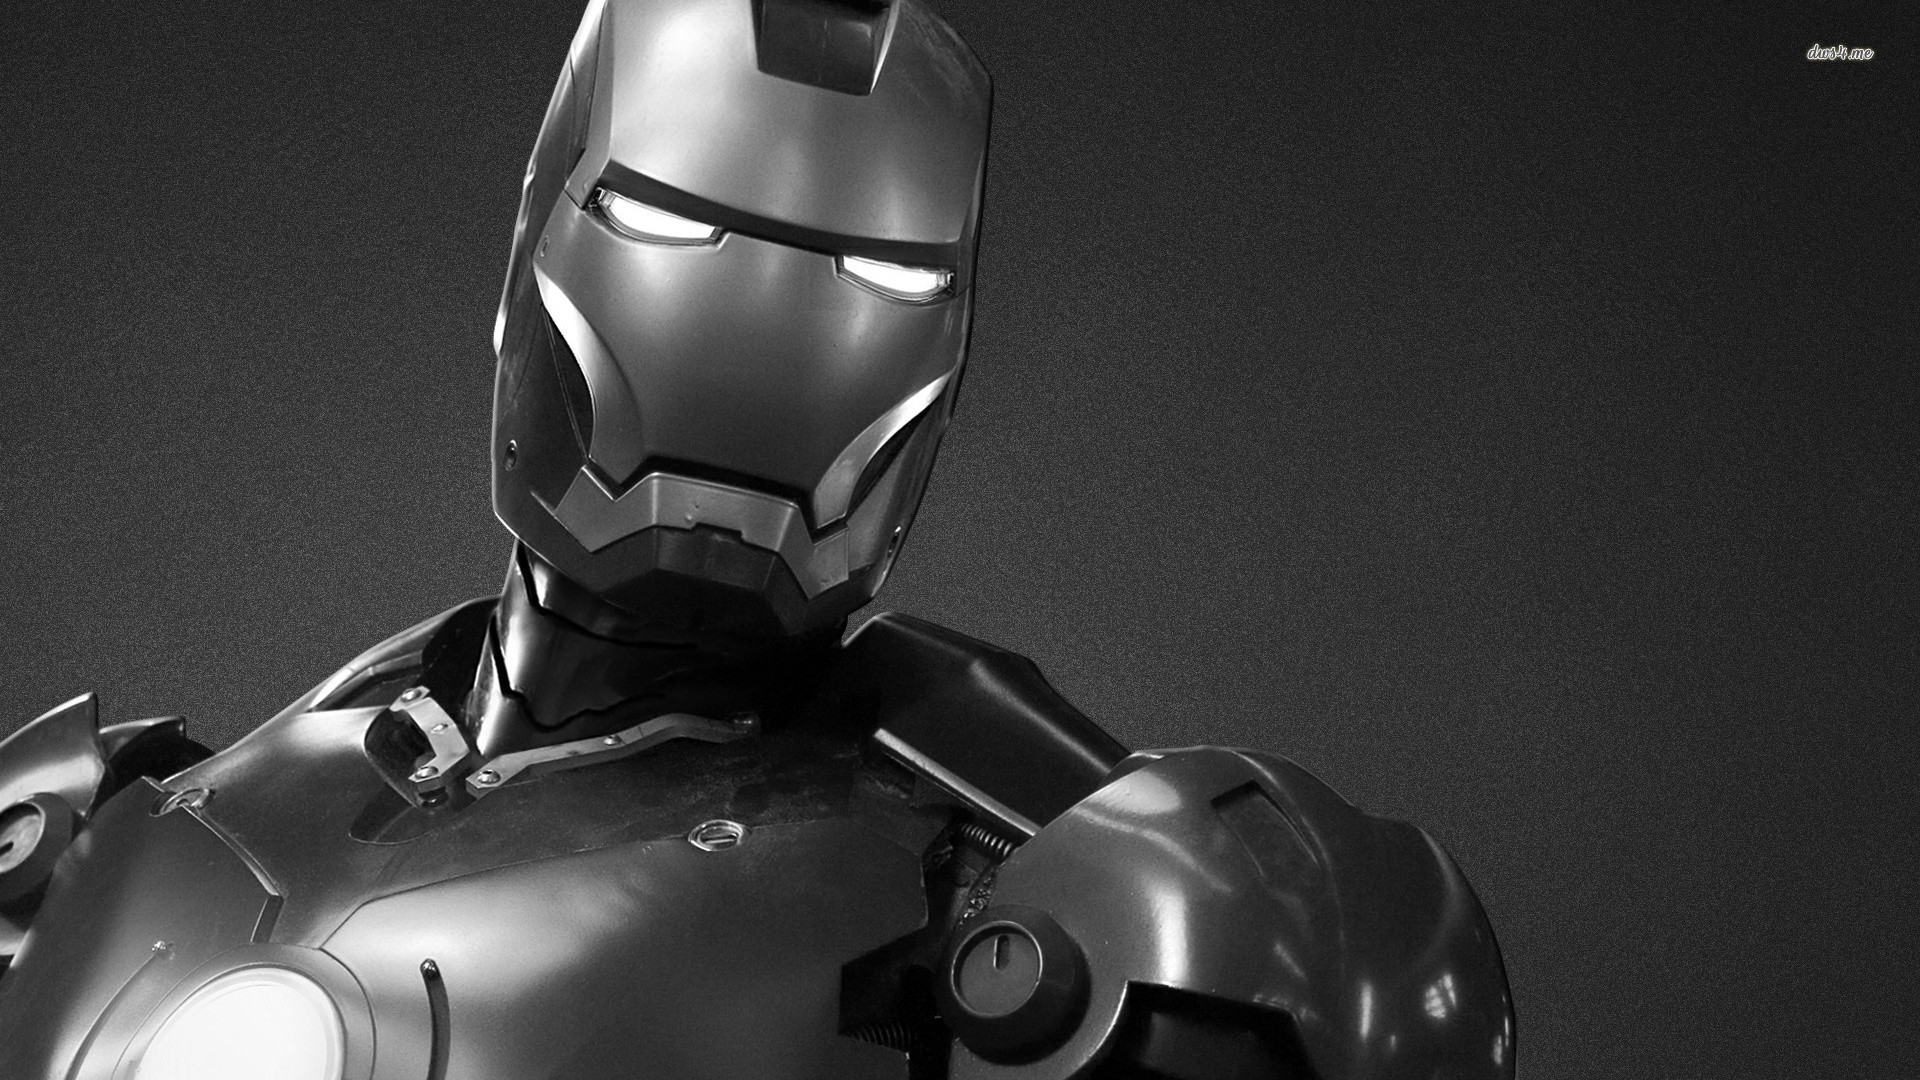 pictures of iron man iron man by corysmithart on deviantart of pictures man iron